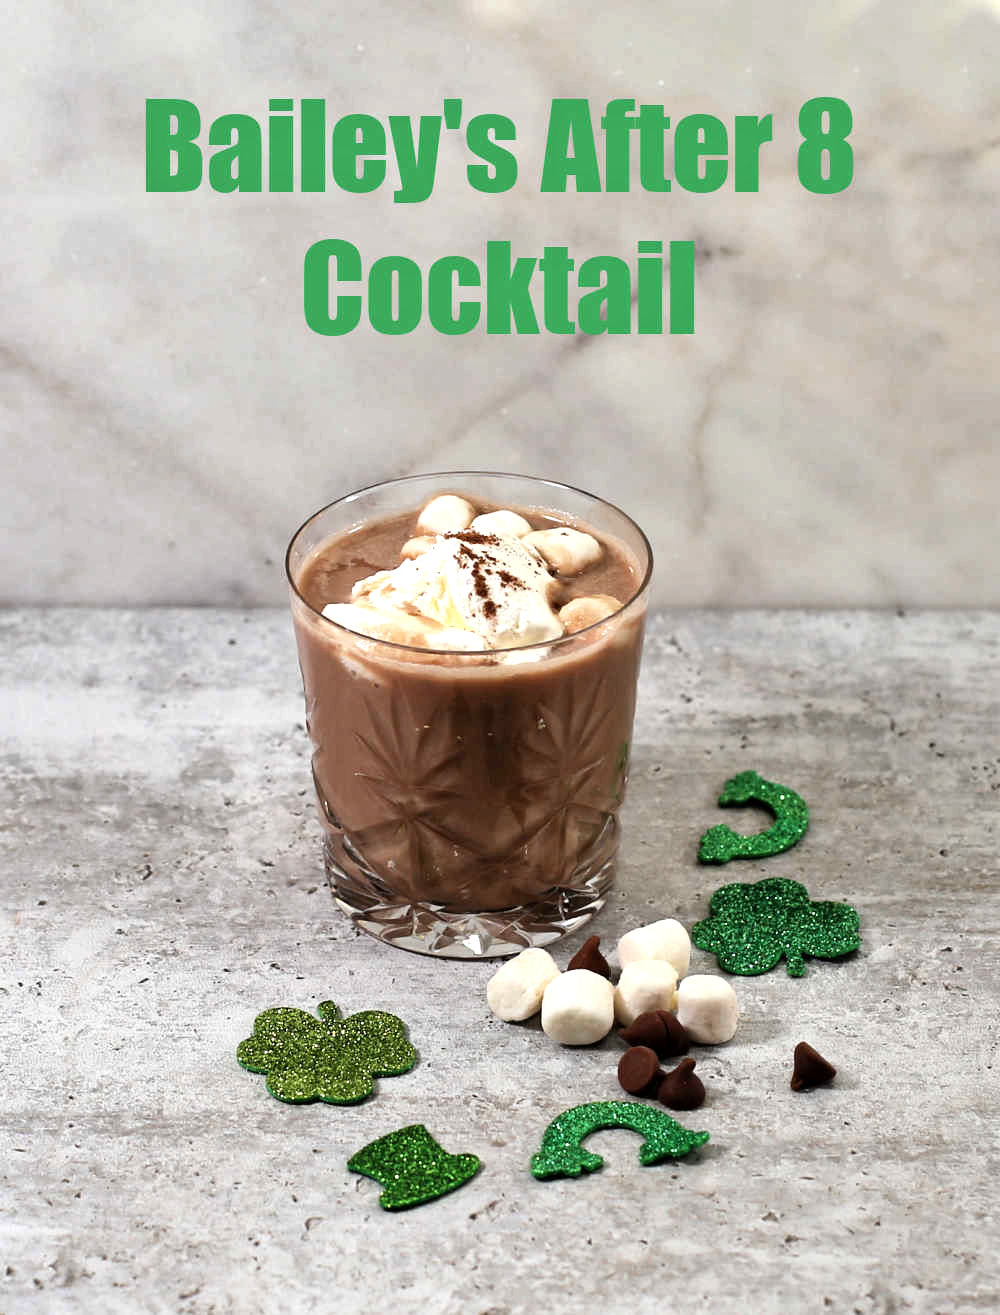 Chocolate drink with whipped cream and marshmallows near green shamrocks and rainbows with words reading Bailey's After 8 Cocktail.